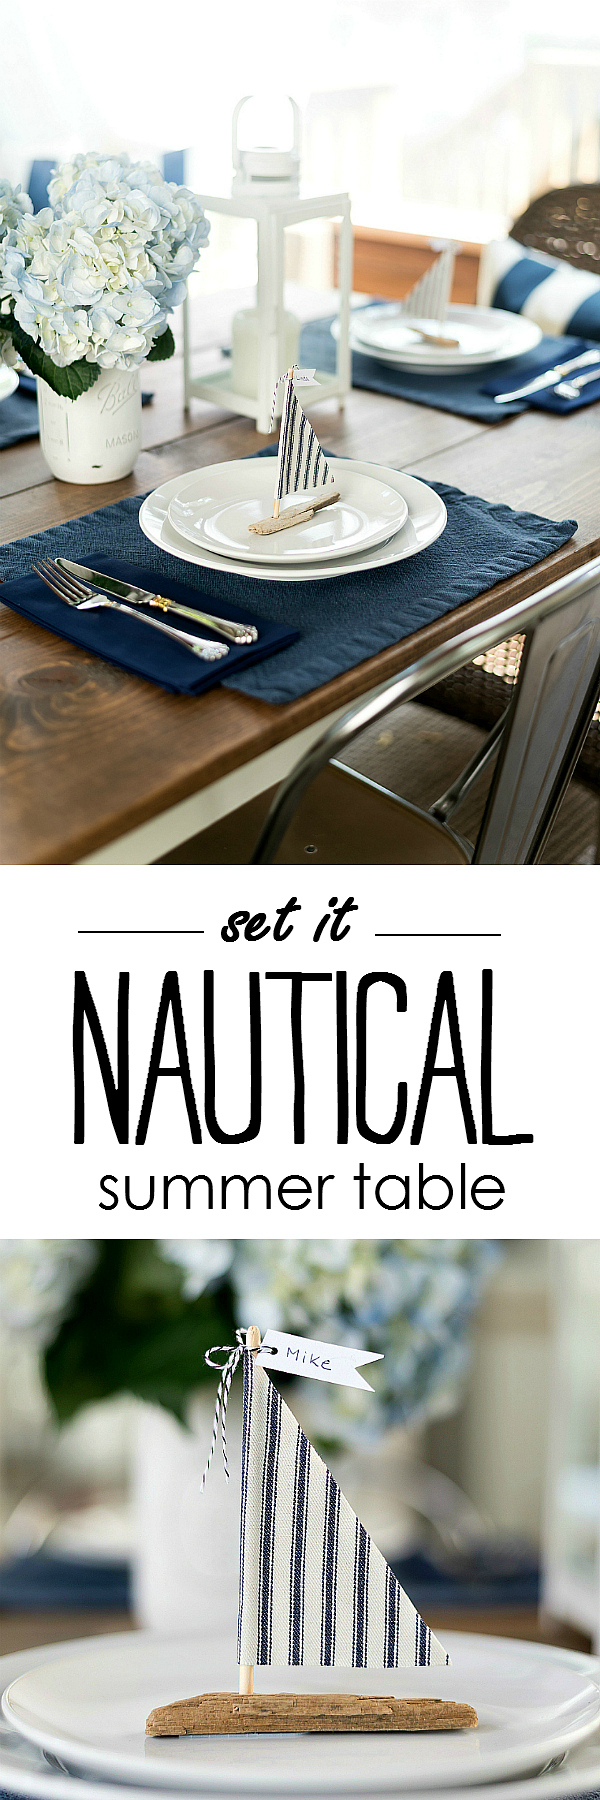 Nautical Table Setting Idea - Summer Table Setting Ideas with Navy and White @It All Started With Paint www.itallstartedwithpaint.com